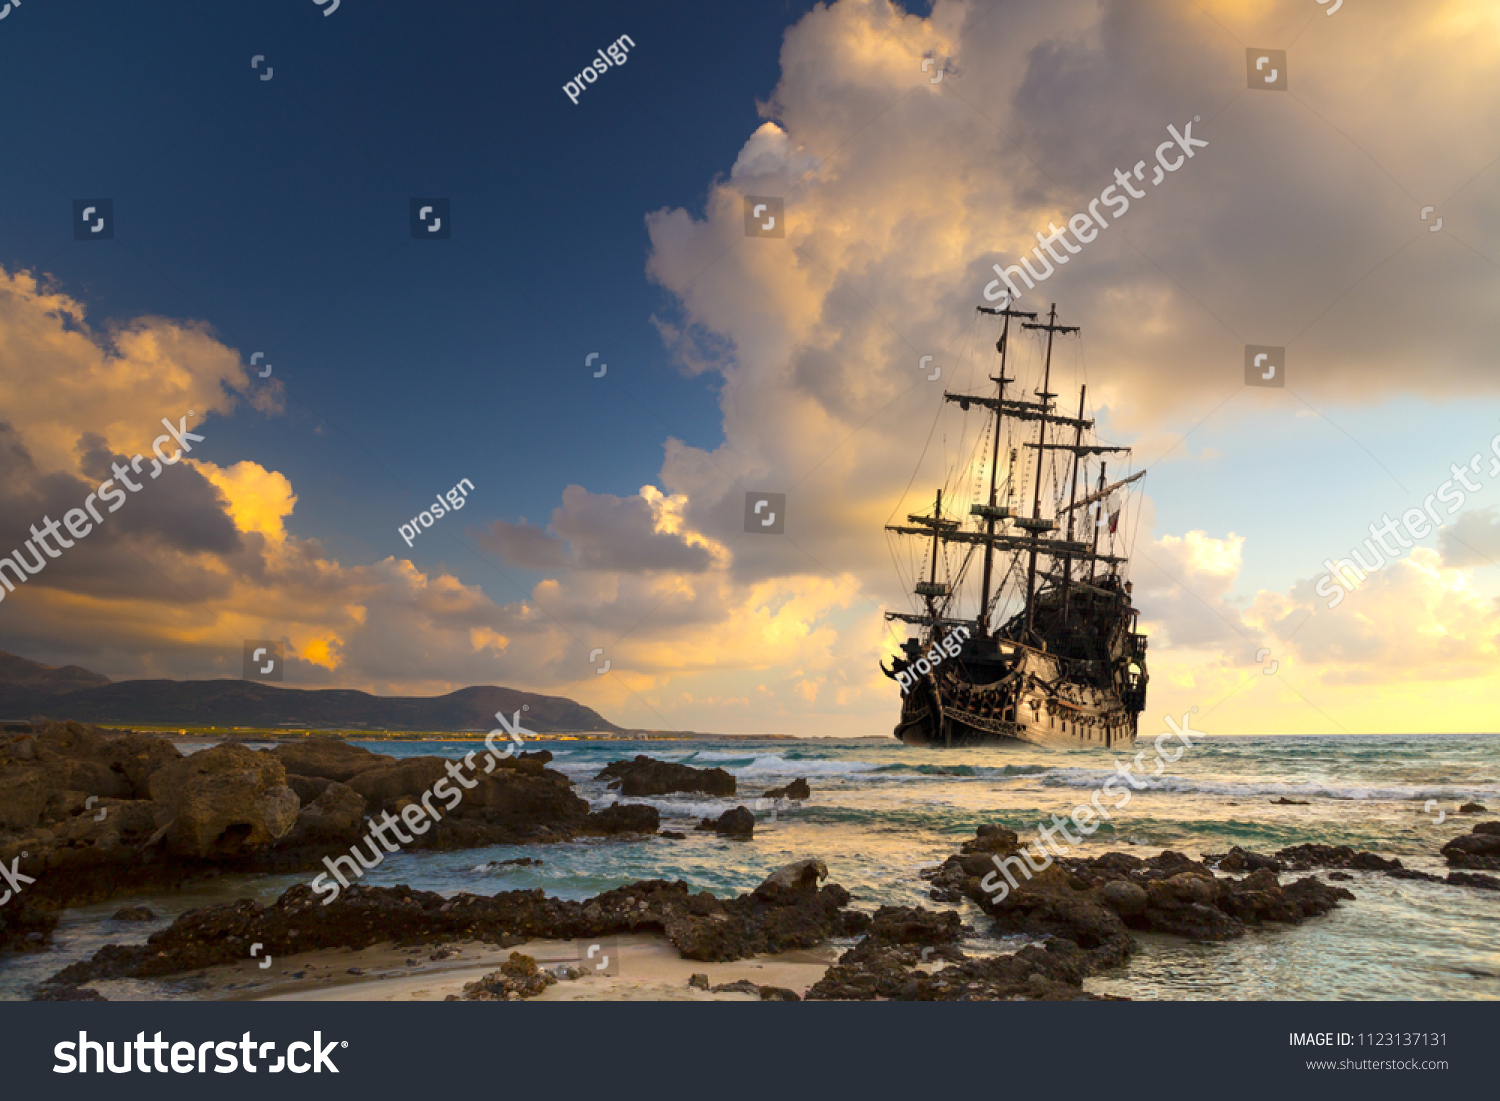 Pirate ship at the open sea at the sunset #1123137131